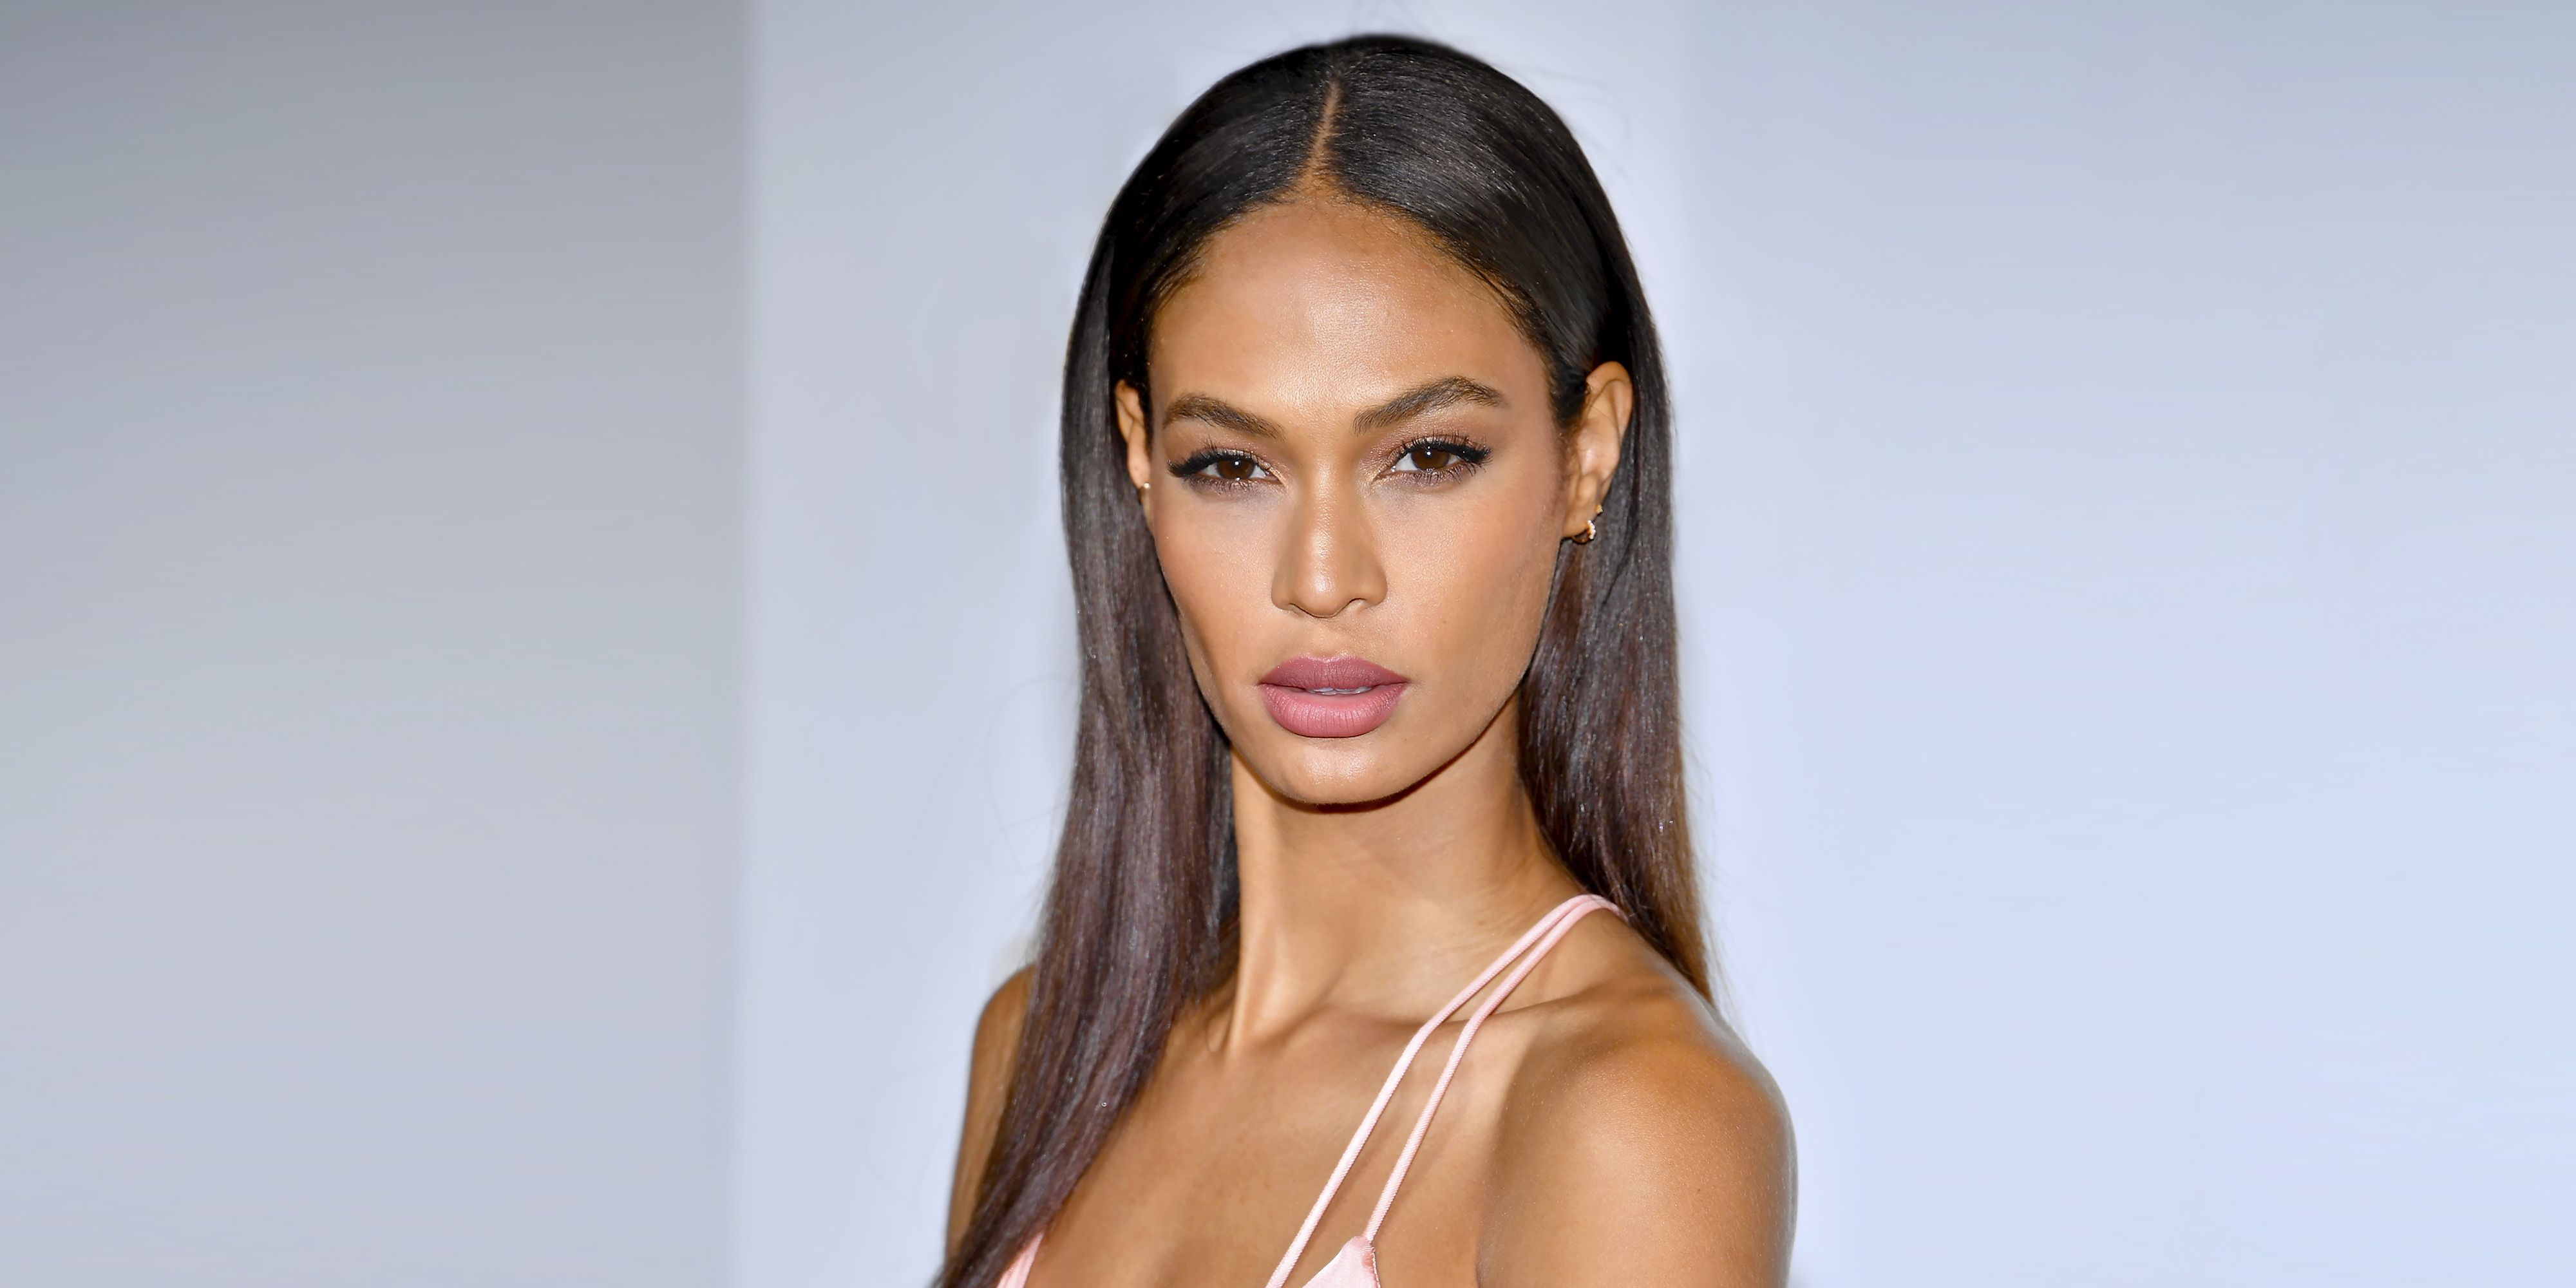 Glamour Model Joan Smalls Wallpapers - Glamour Model Joan Smalls Wallpapers